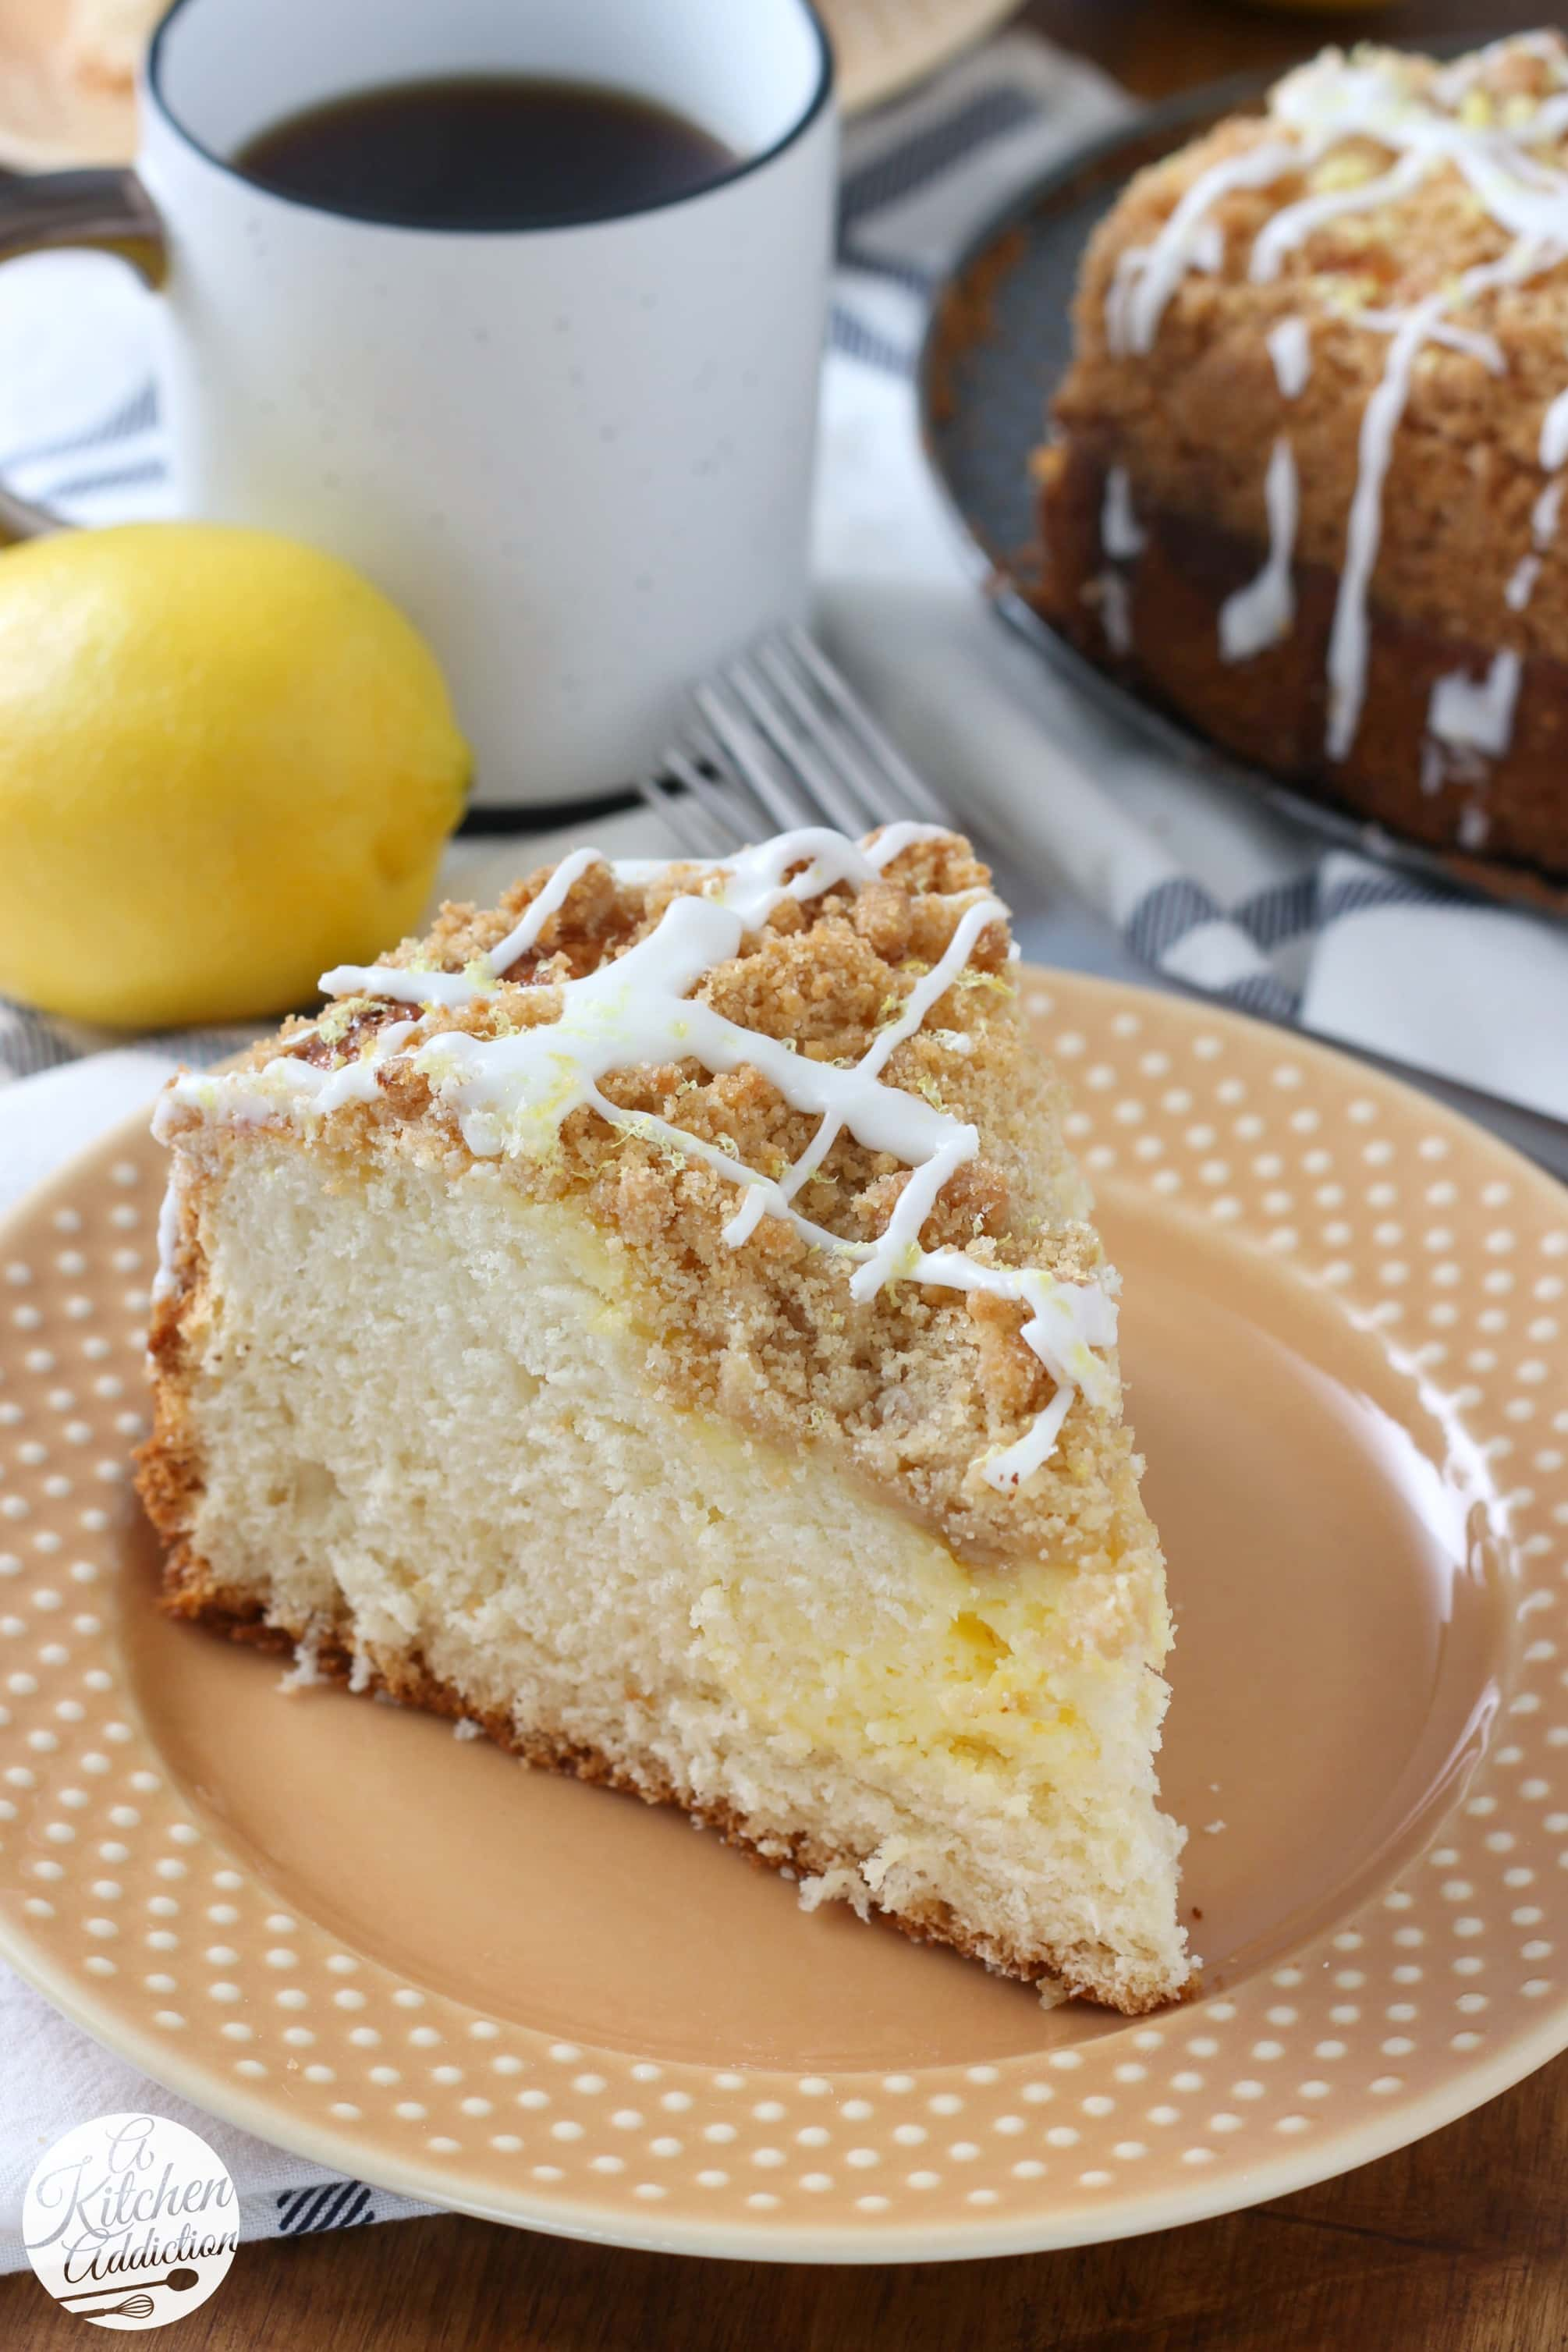 Cream Cheese Swirled Lemon Coffee Cake Recipe from A Kitchen Addiction